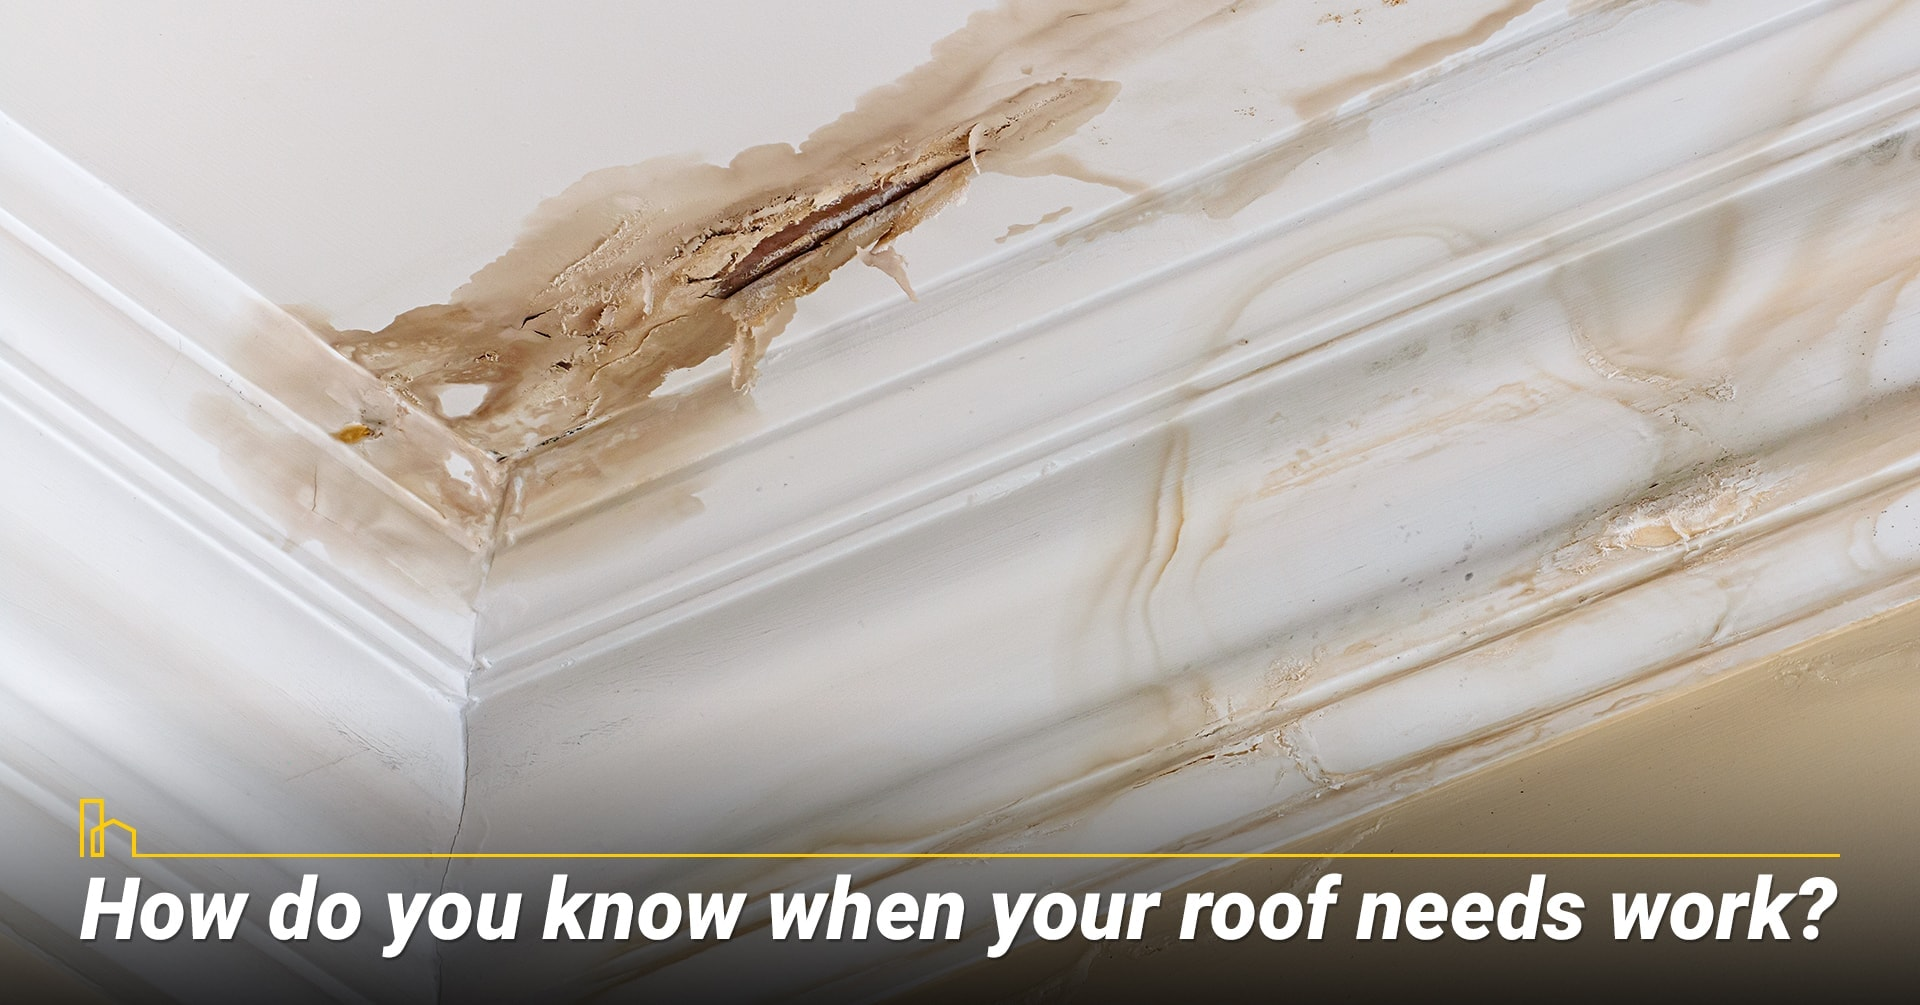 How do you know when your roof needs work? Review condition of the roof